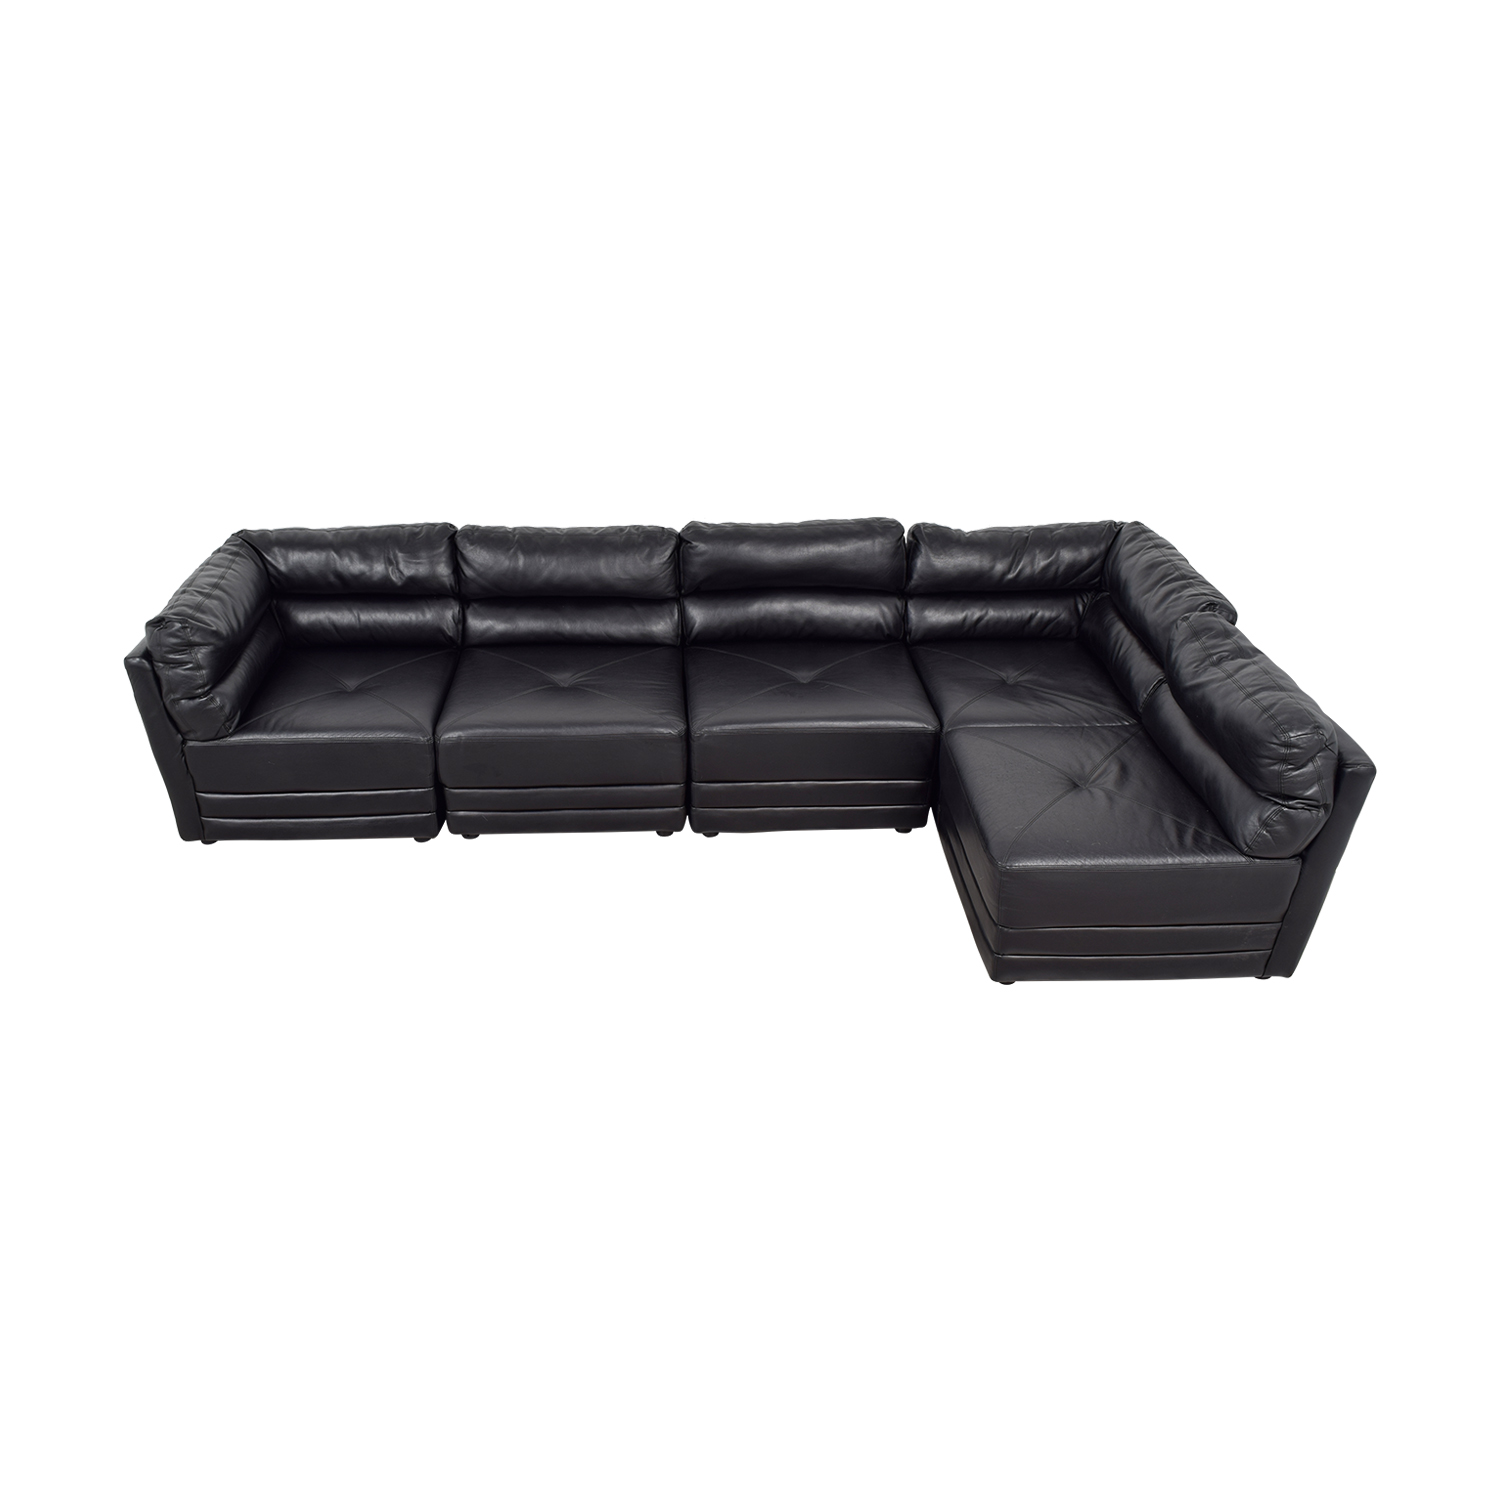 buy Black Leather L-Shaped Sectional